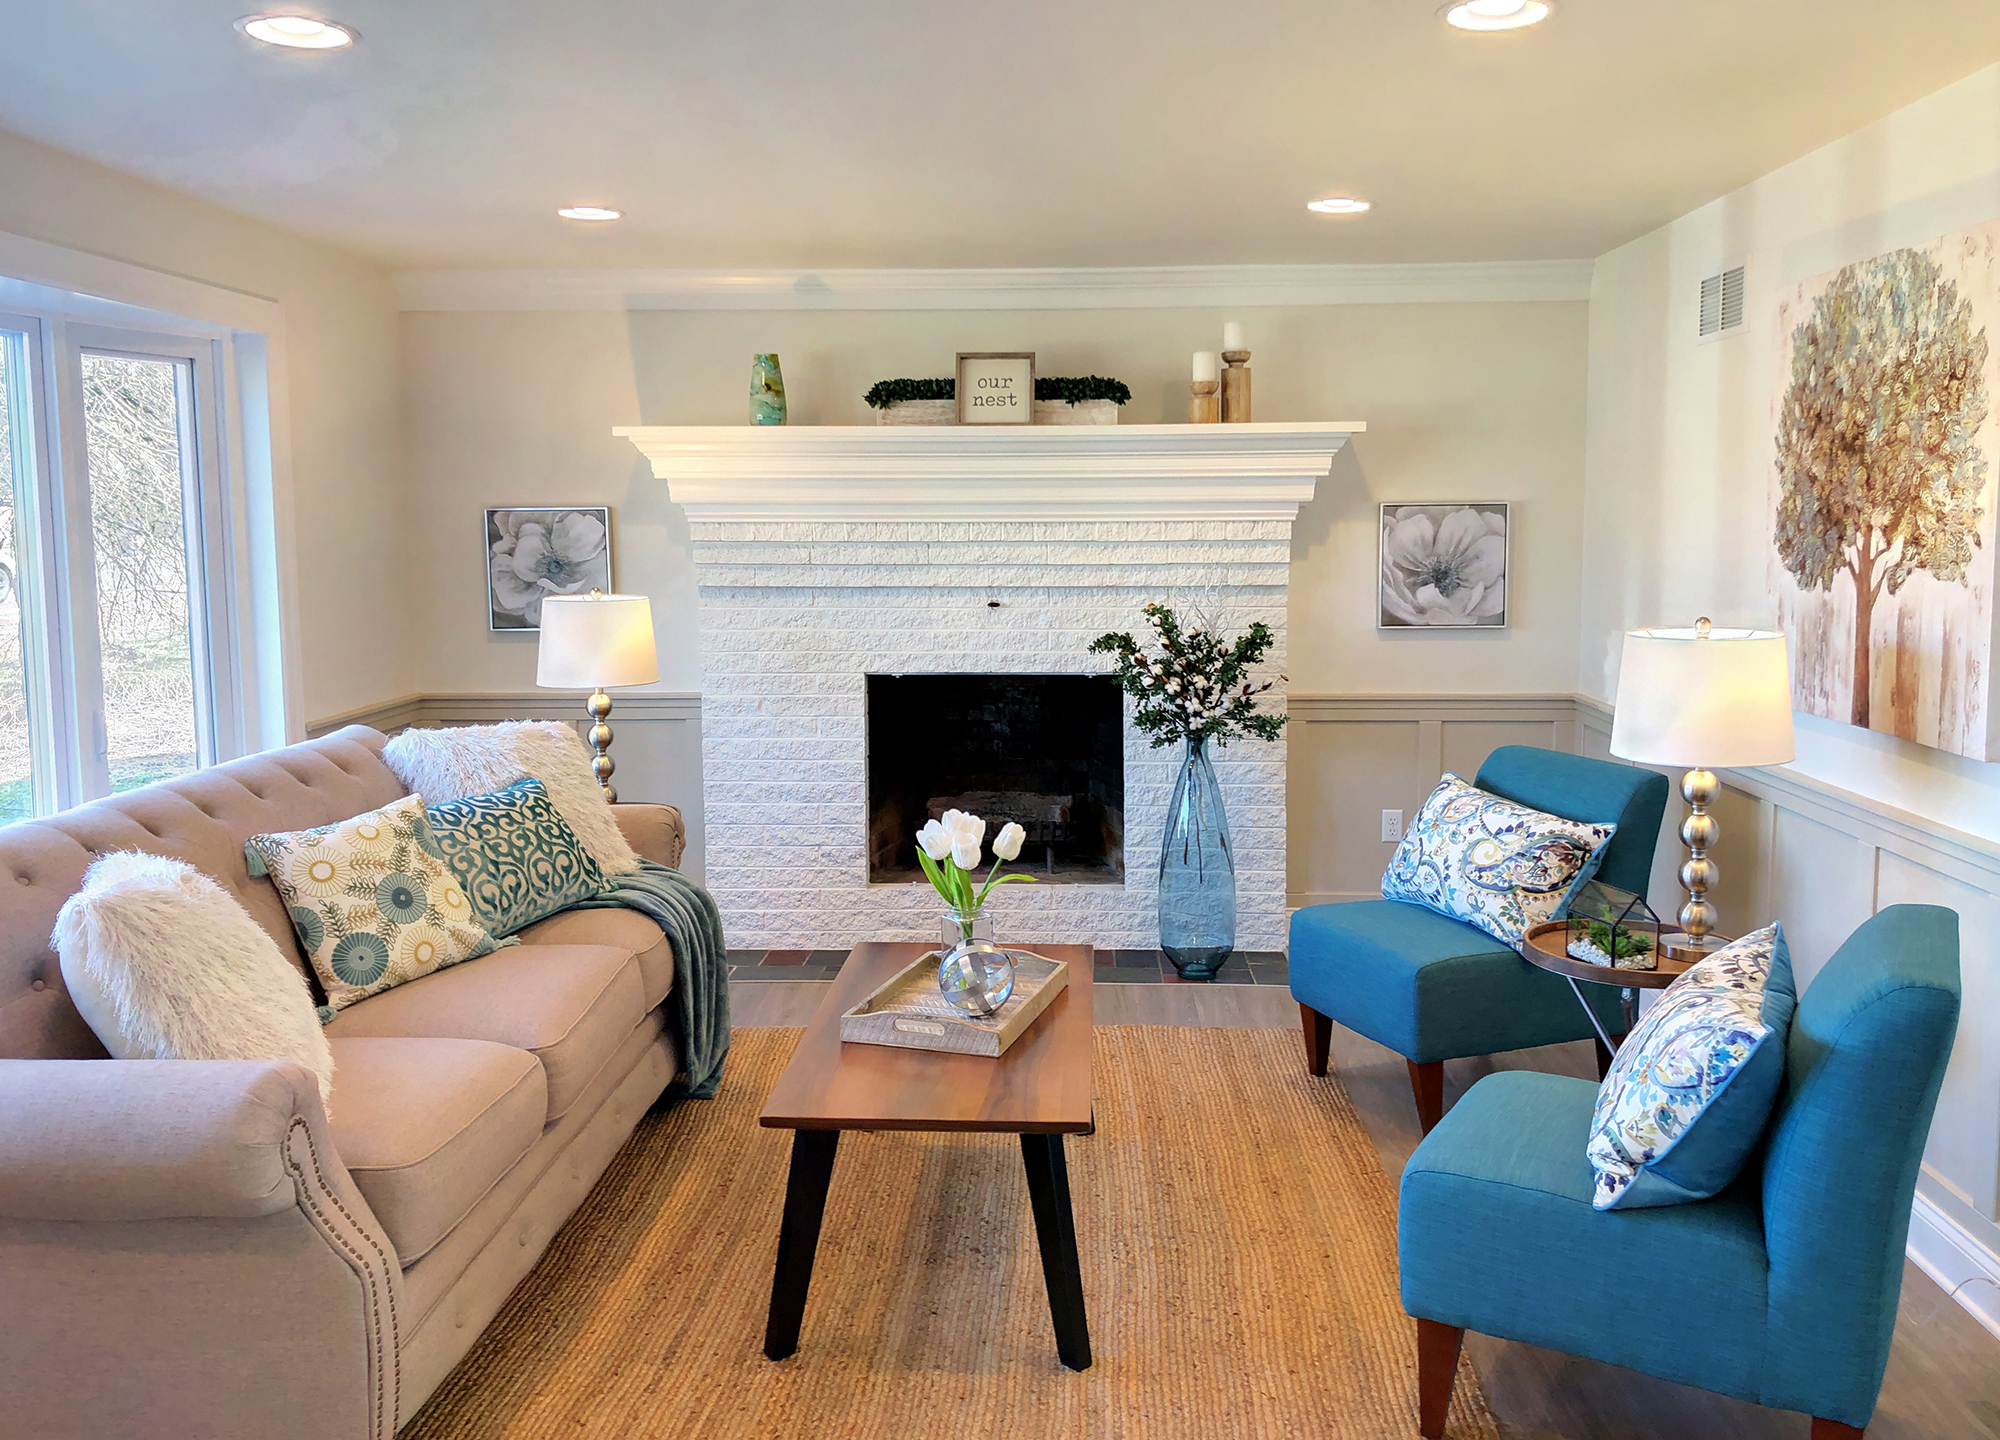 Home Staging by Interior Designer Sherri Blum in Harrisburg, Carlisle PA